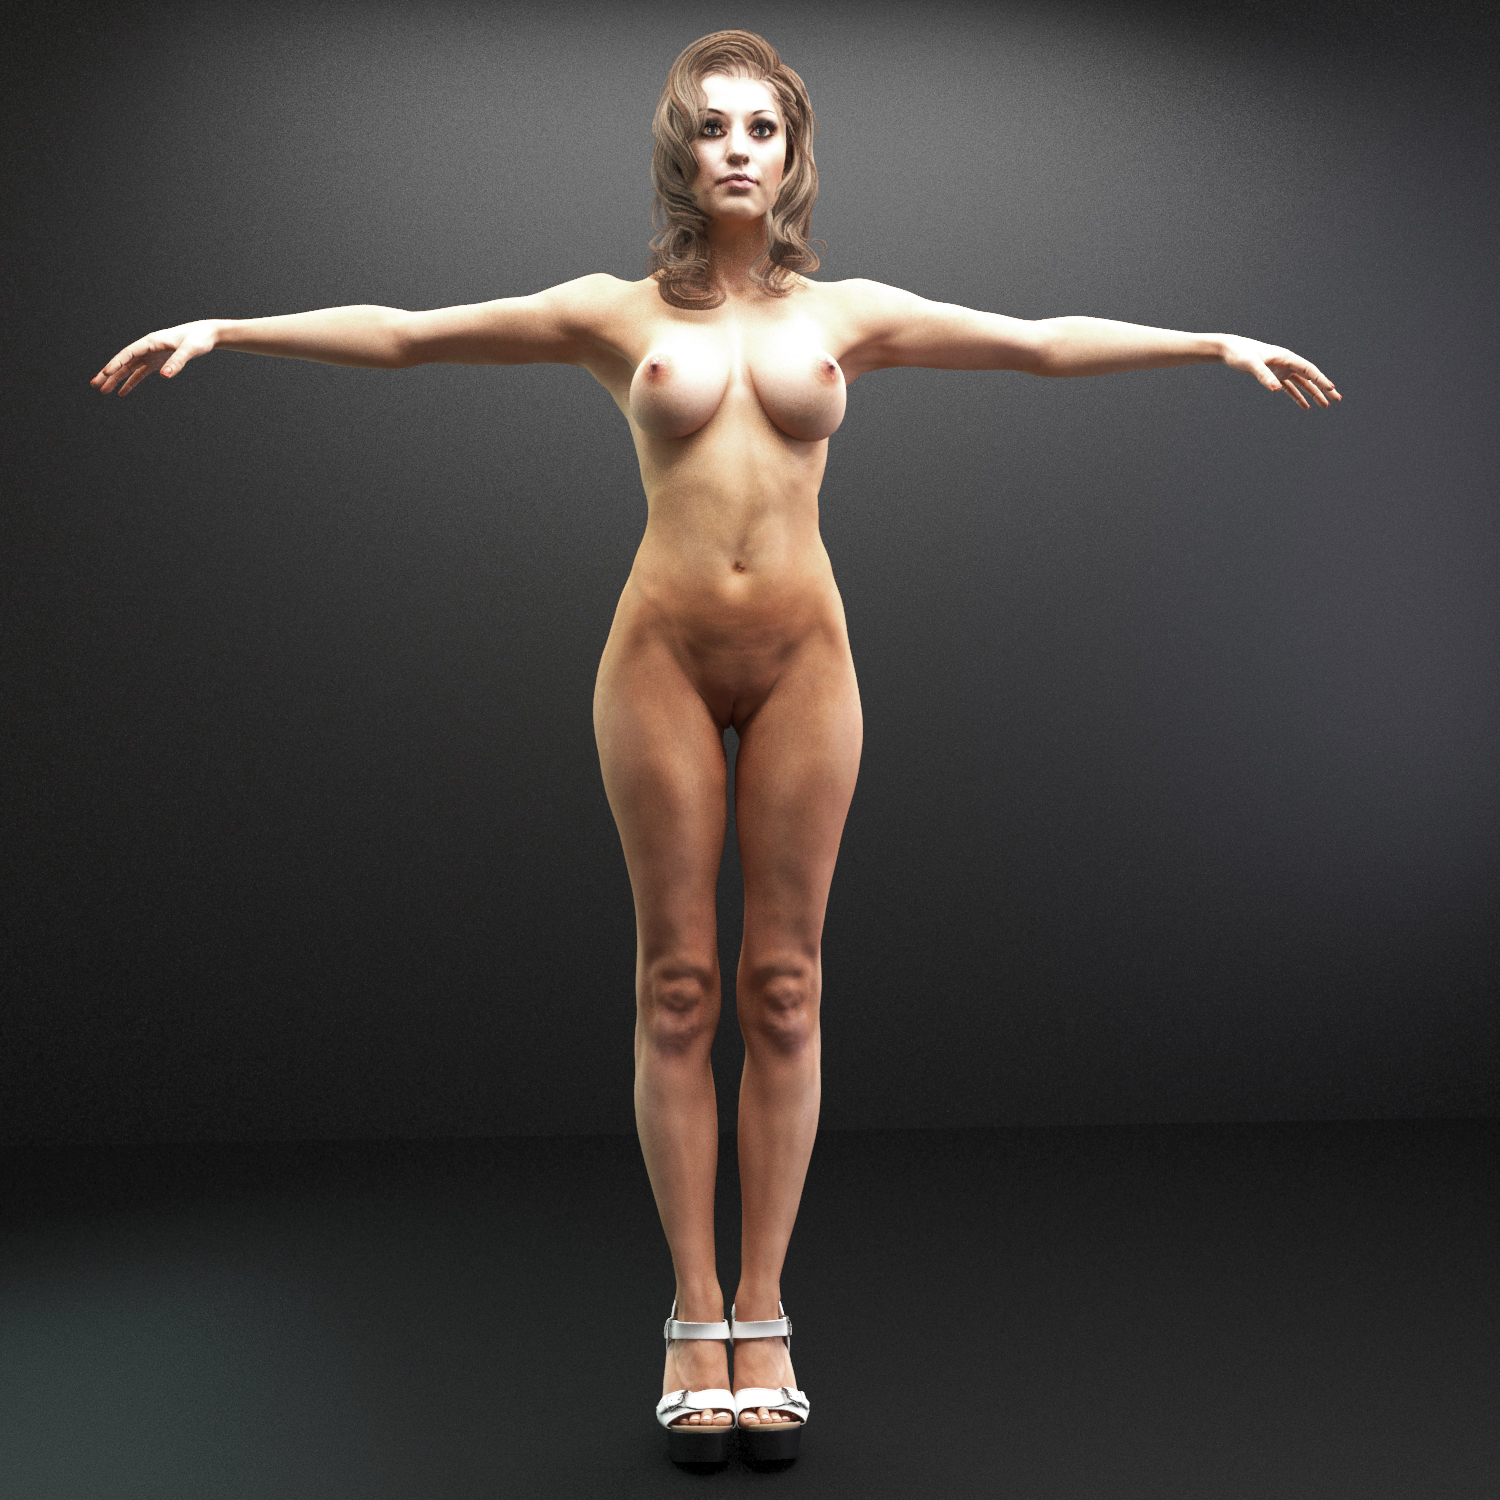 Female nude rigged 3d model